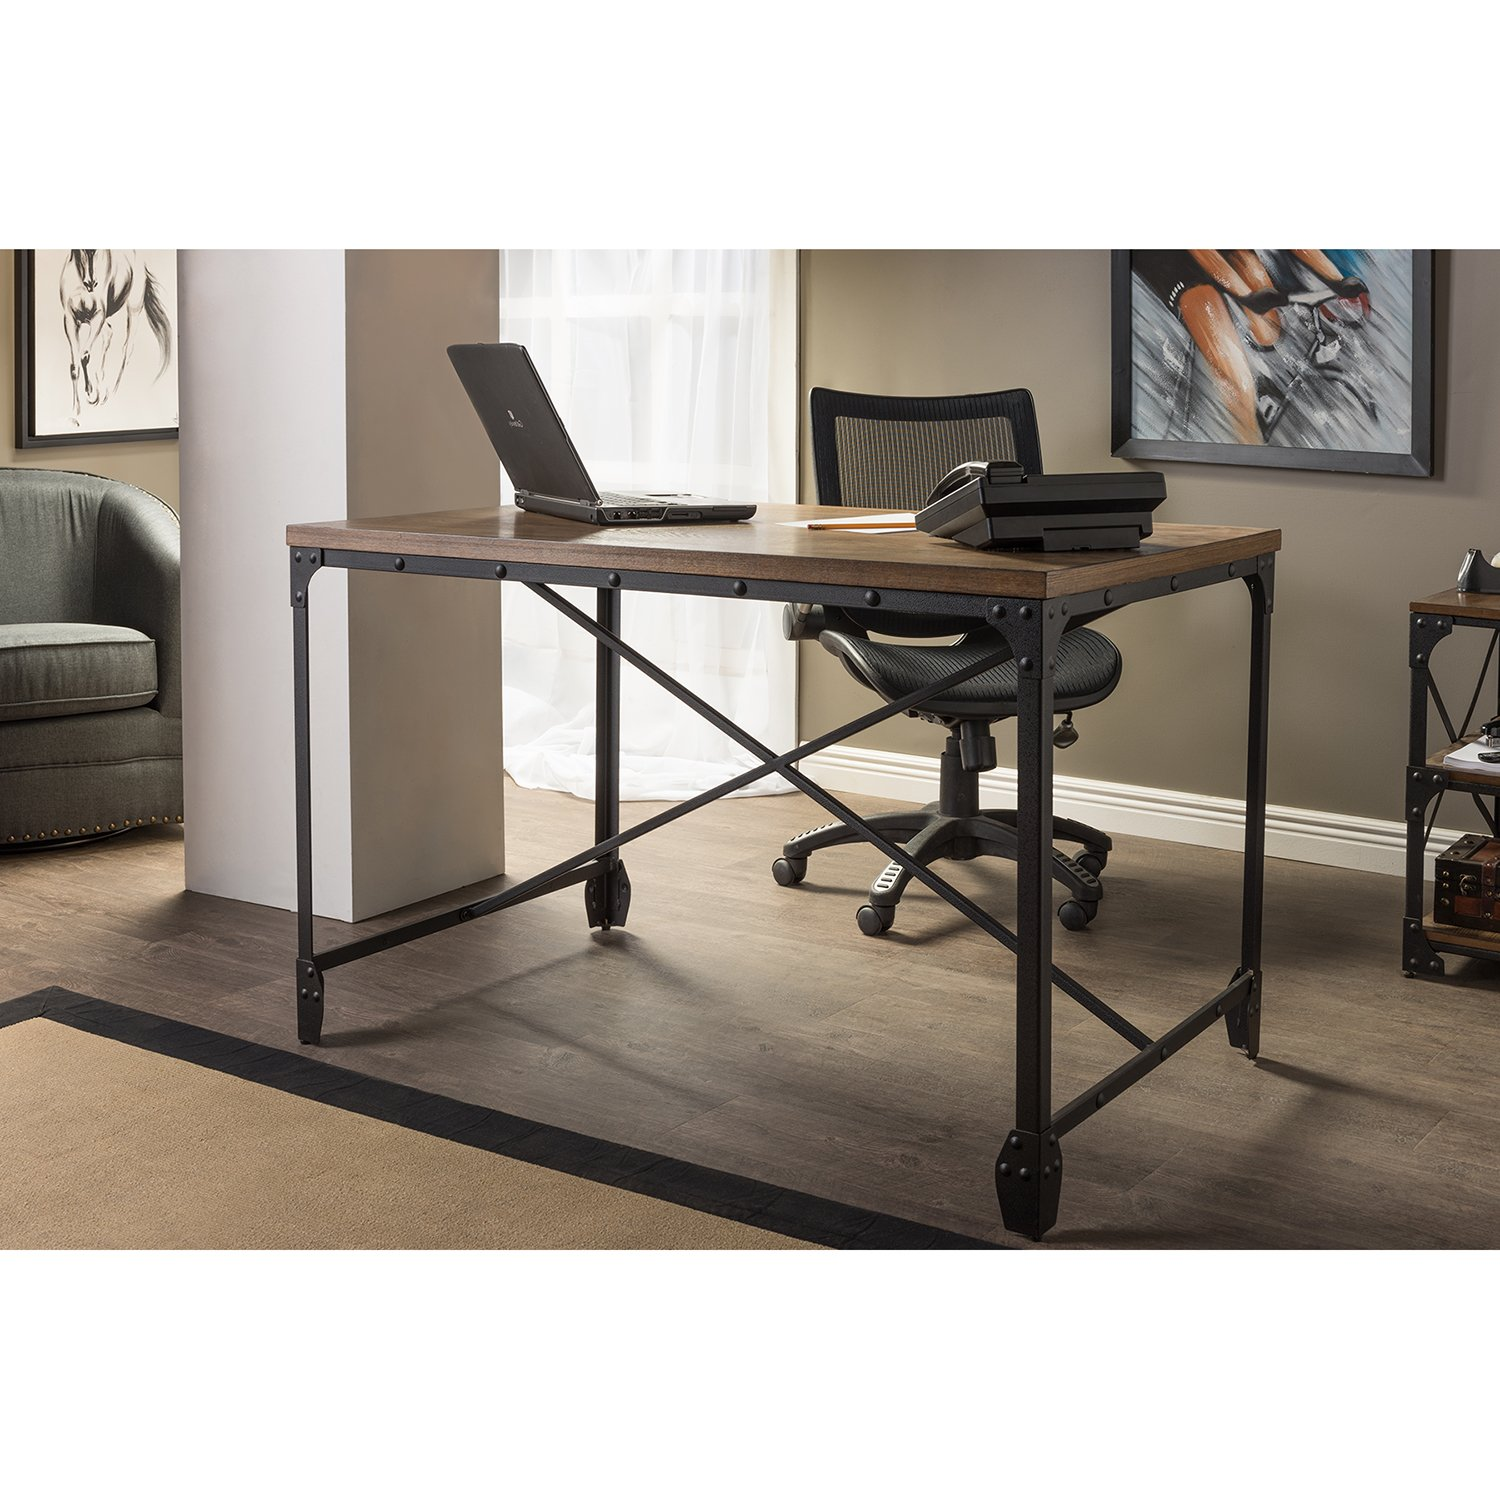 office wooden table.  Table Amazoncom Baxton Studio Wholesale Interiors Greyson Vintage Industrial  Home Office Wood Desk Antique Bronze Kitchen U0026 Dining On Wooden Table E